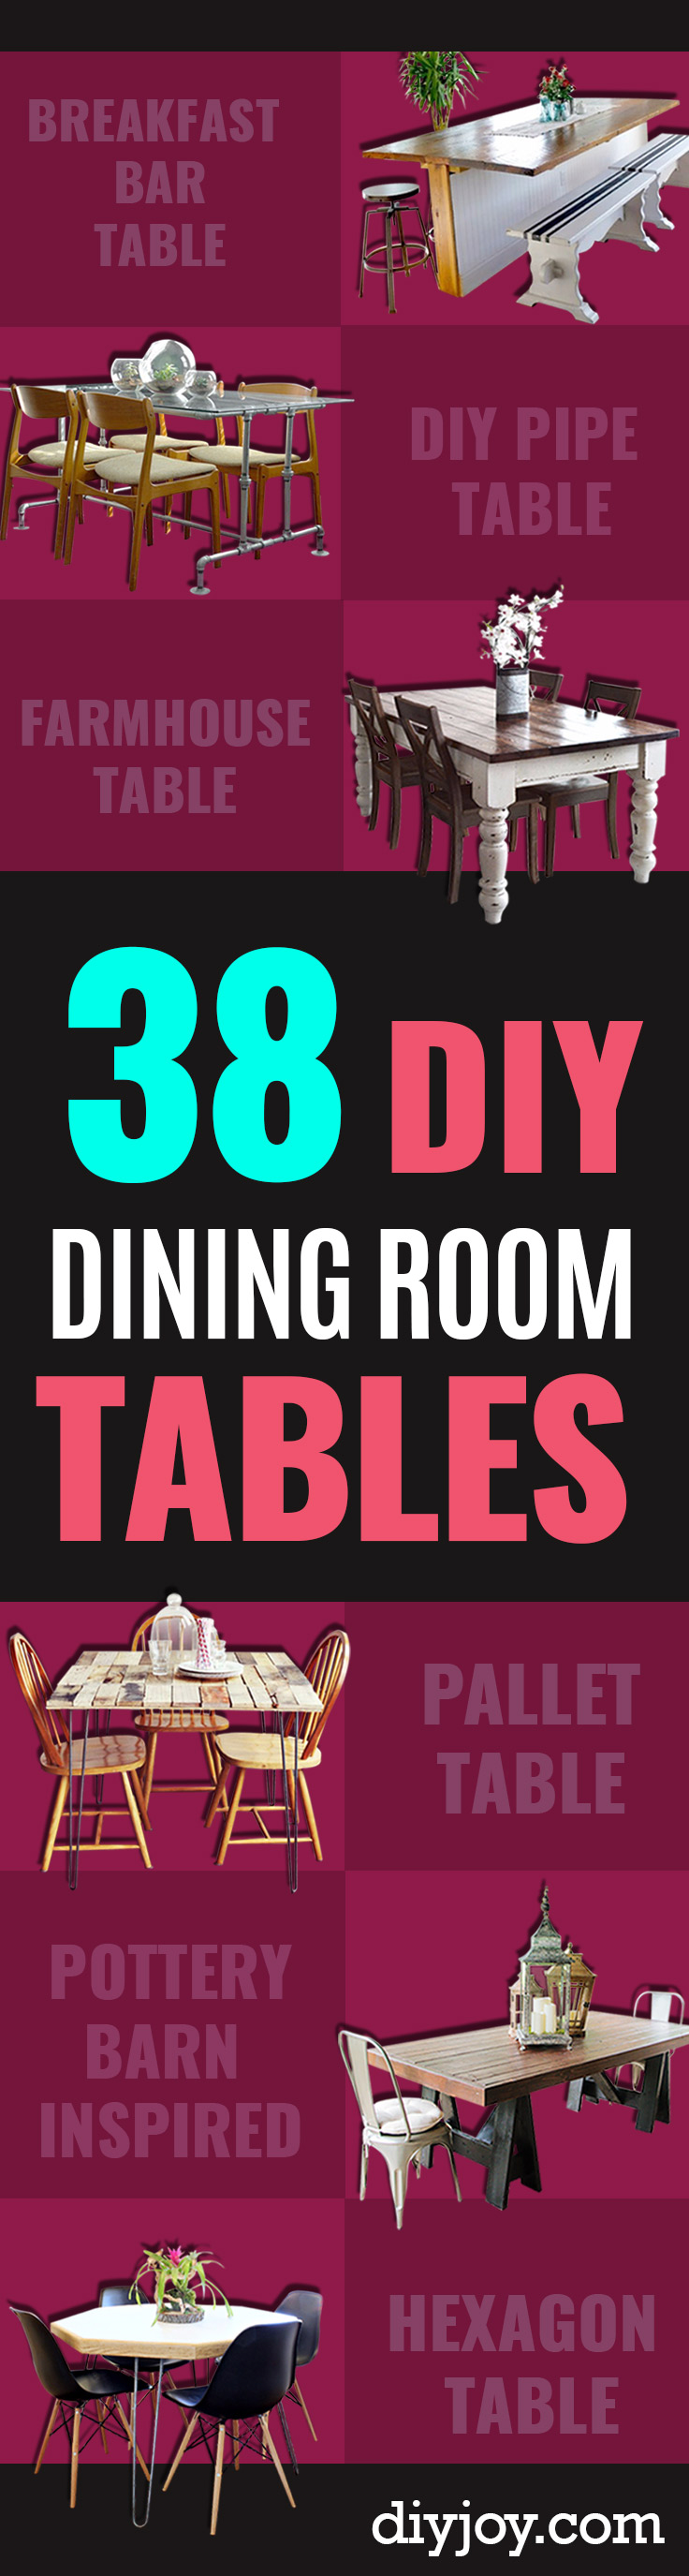 DIY Dining Room Table Projects - Creative Do It Yourself Tables and Ideas You Can Make For Your Kitchen or Dining Area. Easy Step by Step Tutorials that Are Perfect For Those On A Budget